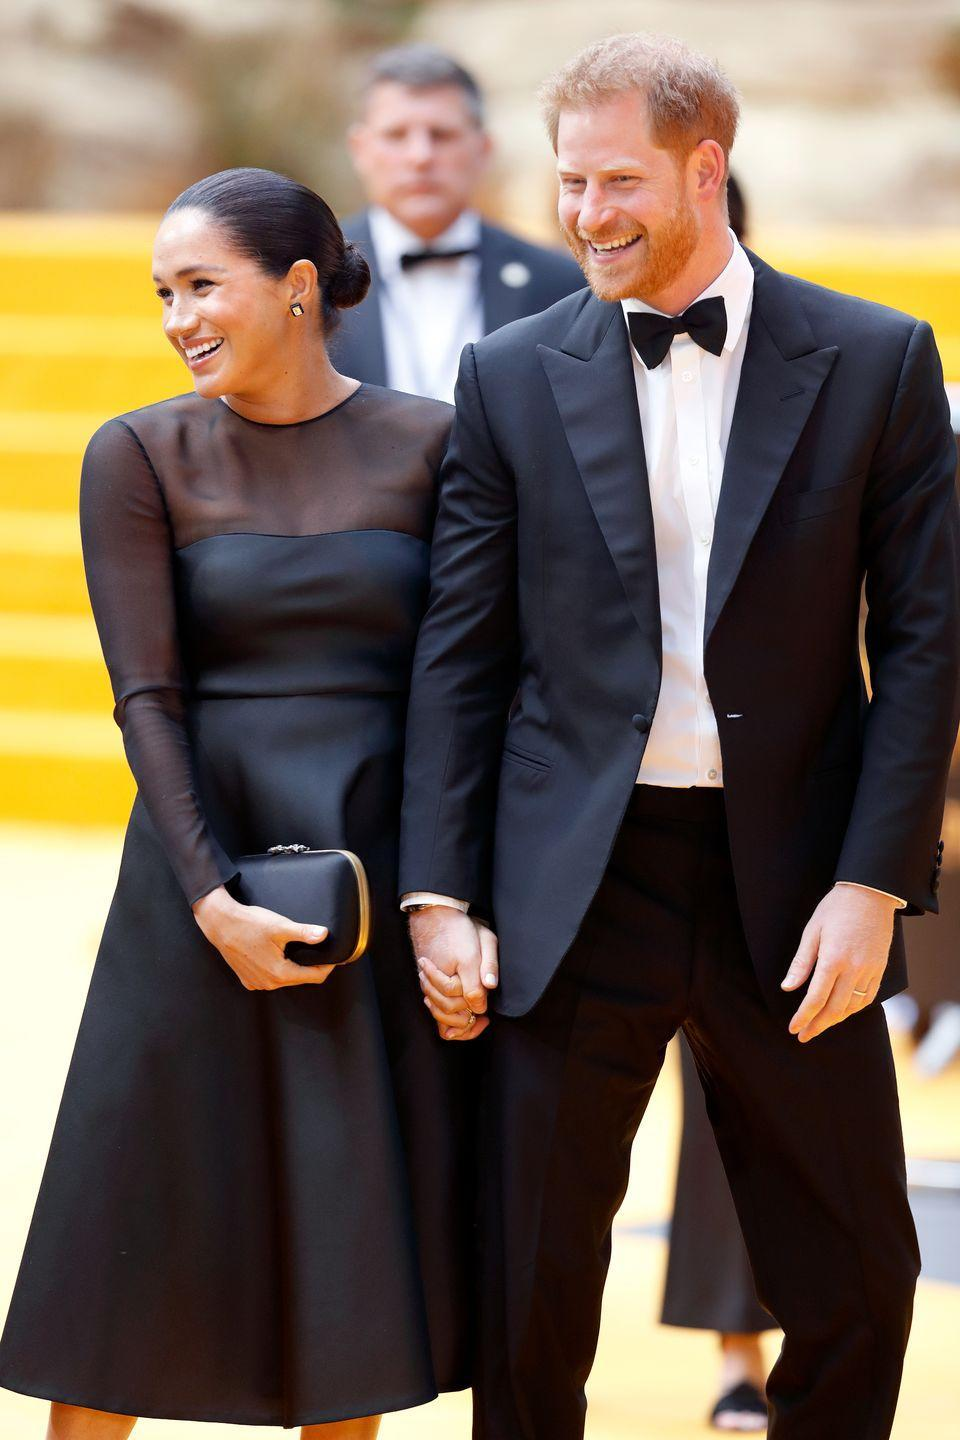 <p>The Duke and Duchess of Sussex laugh heartily during the premiere.</p>